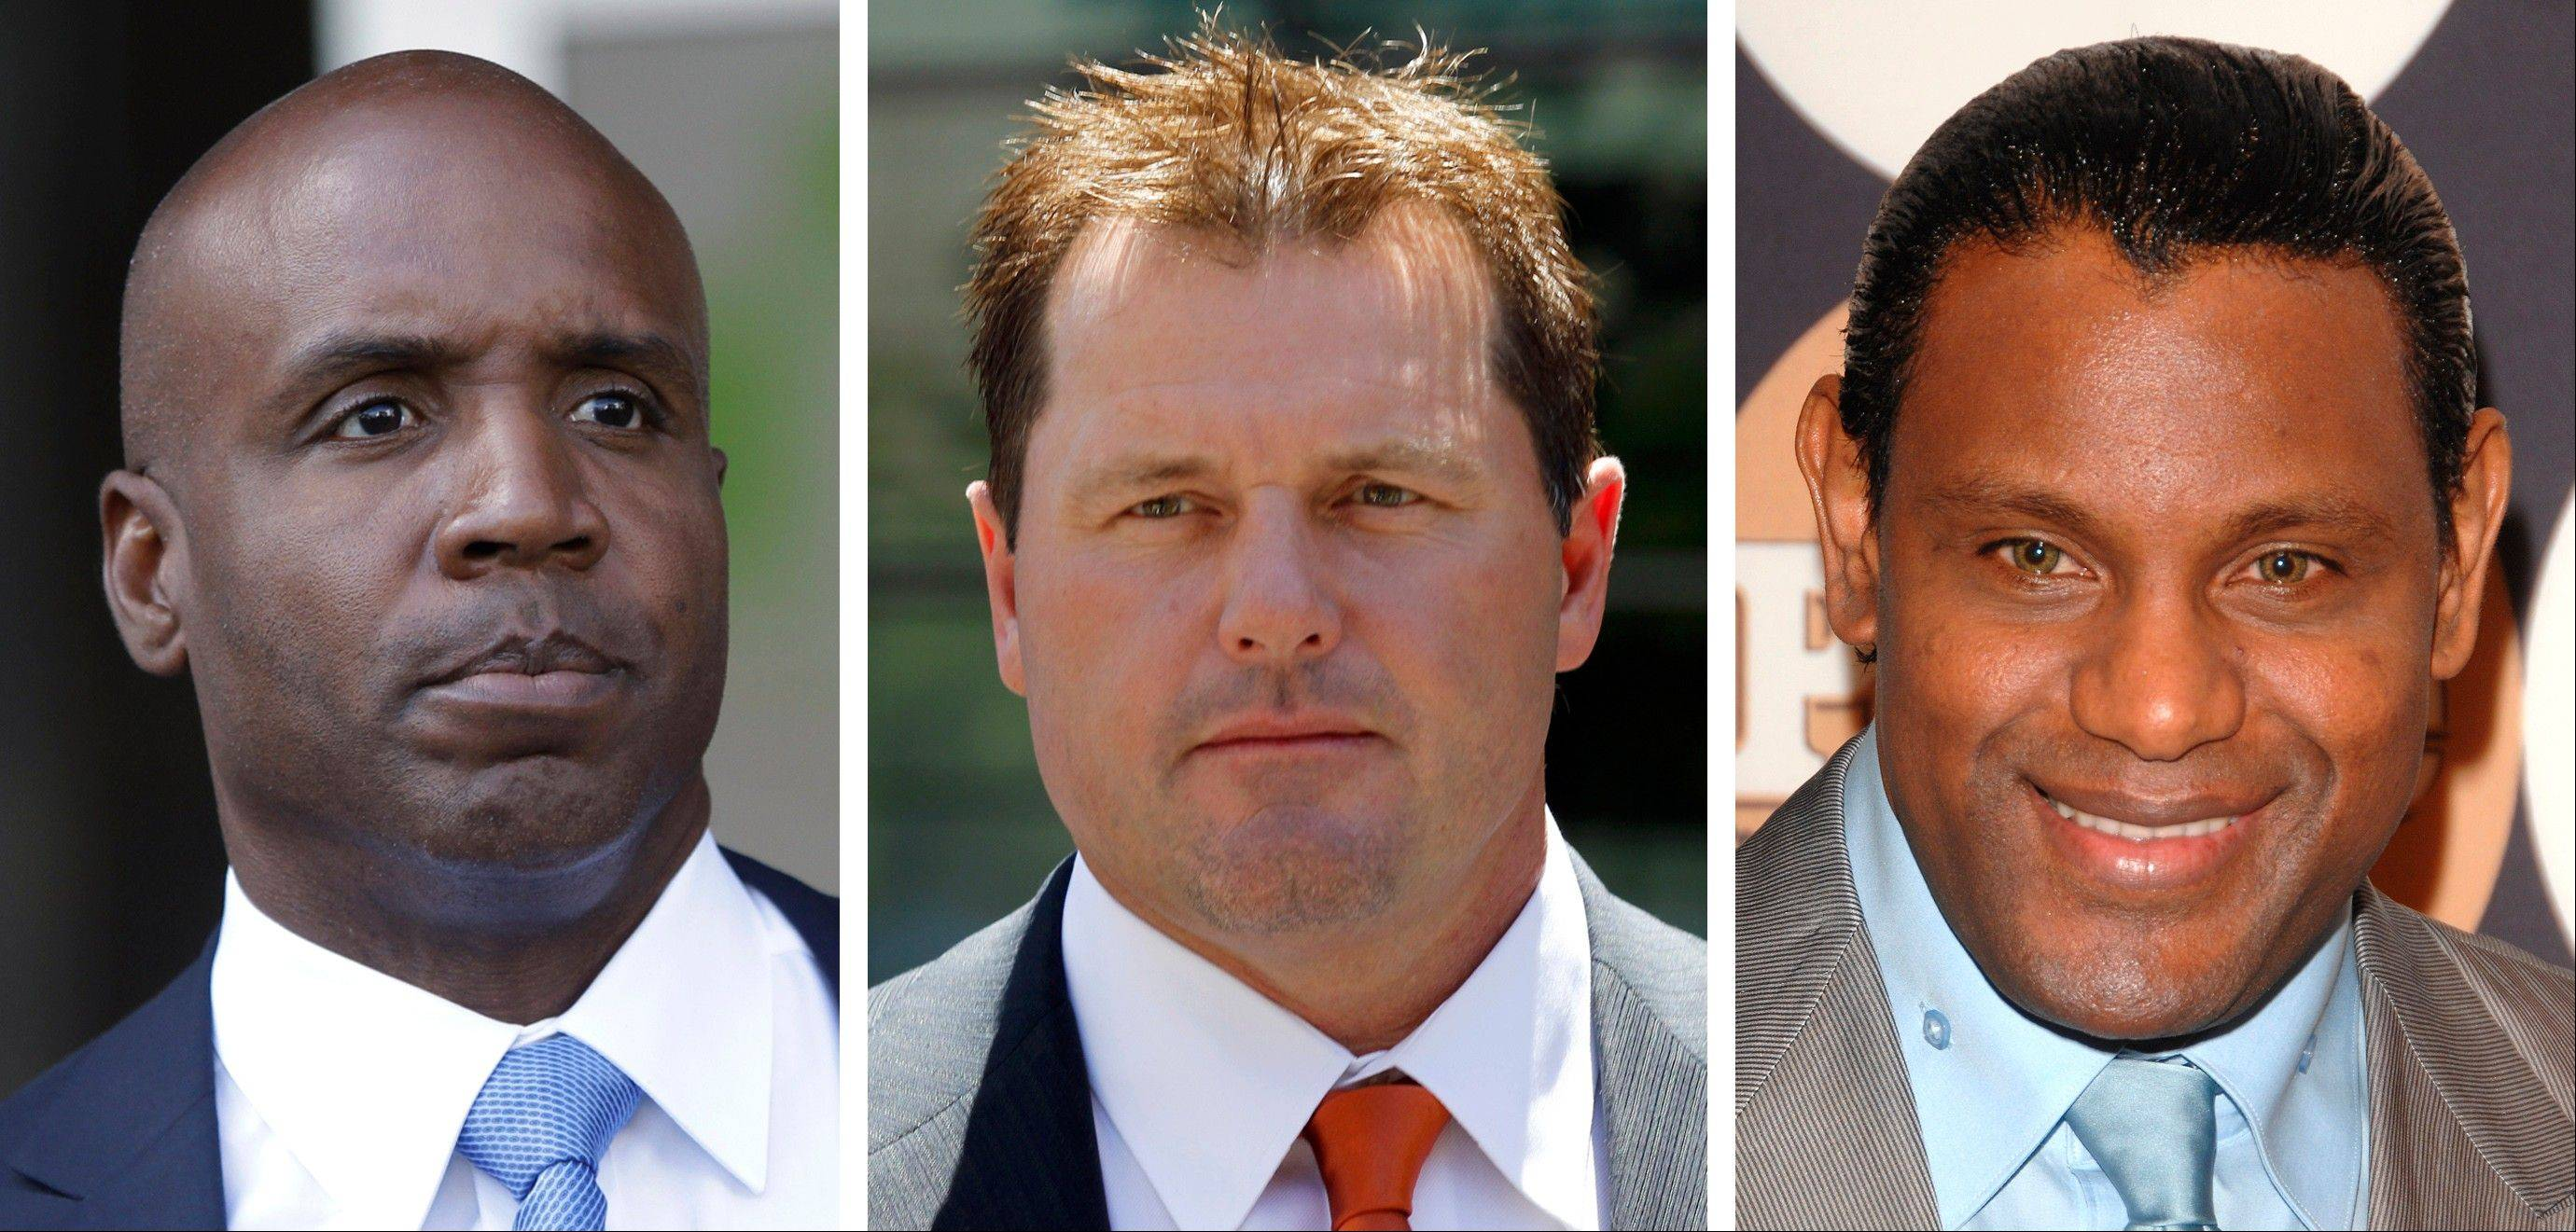 Former San Francisco Giants baseball player Barry Bonds, left, former pitcher Roger Clemens and former Cubs slugger Sammy Sosa didn�t get enough votes for entrance to the National Baseball Hall of Fame. Sosa was far behind Bonds and Clemens.